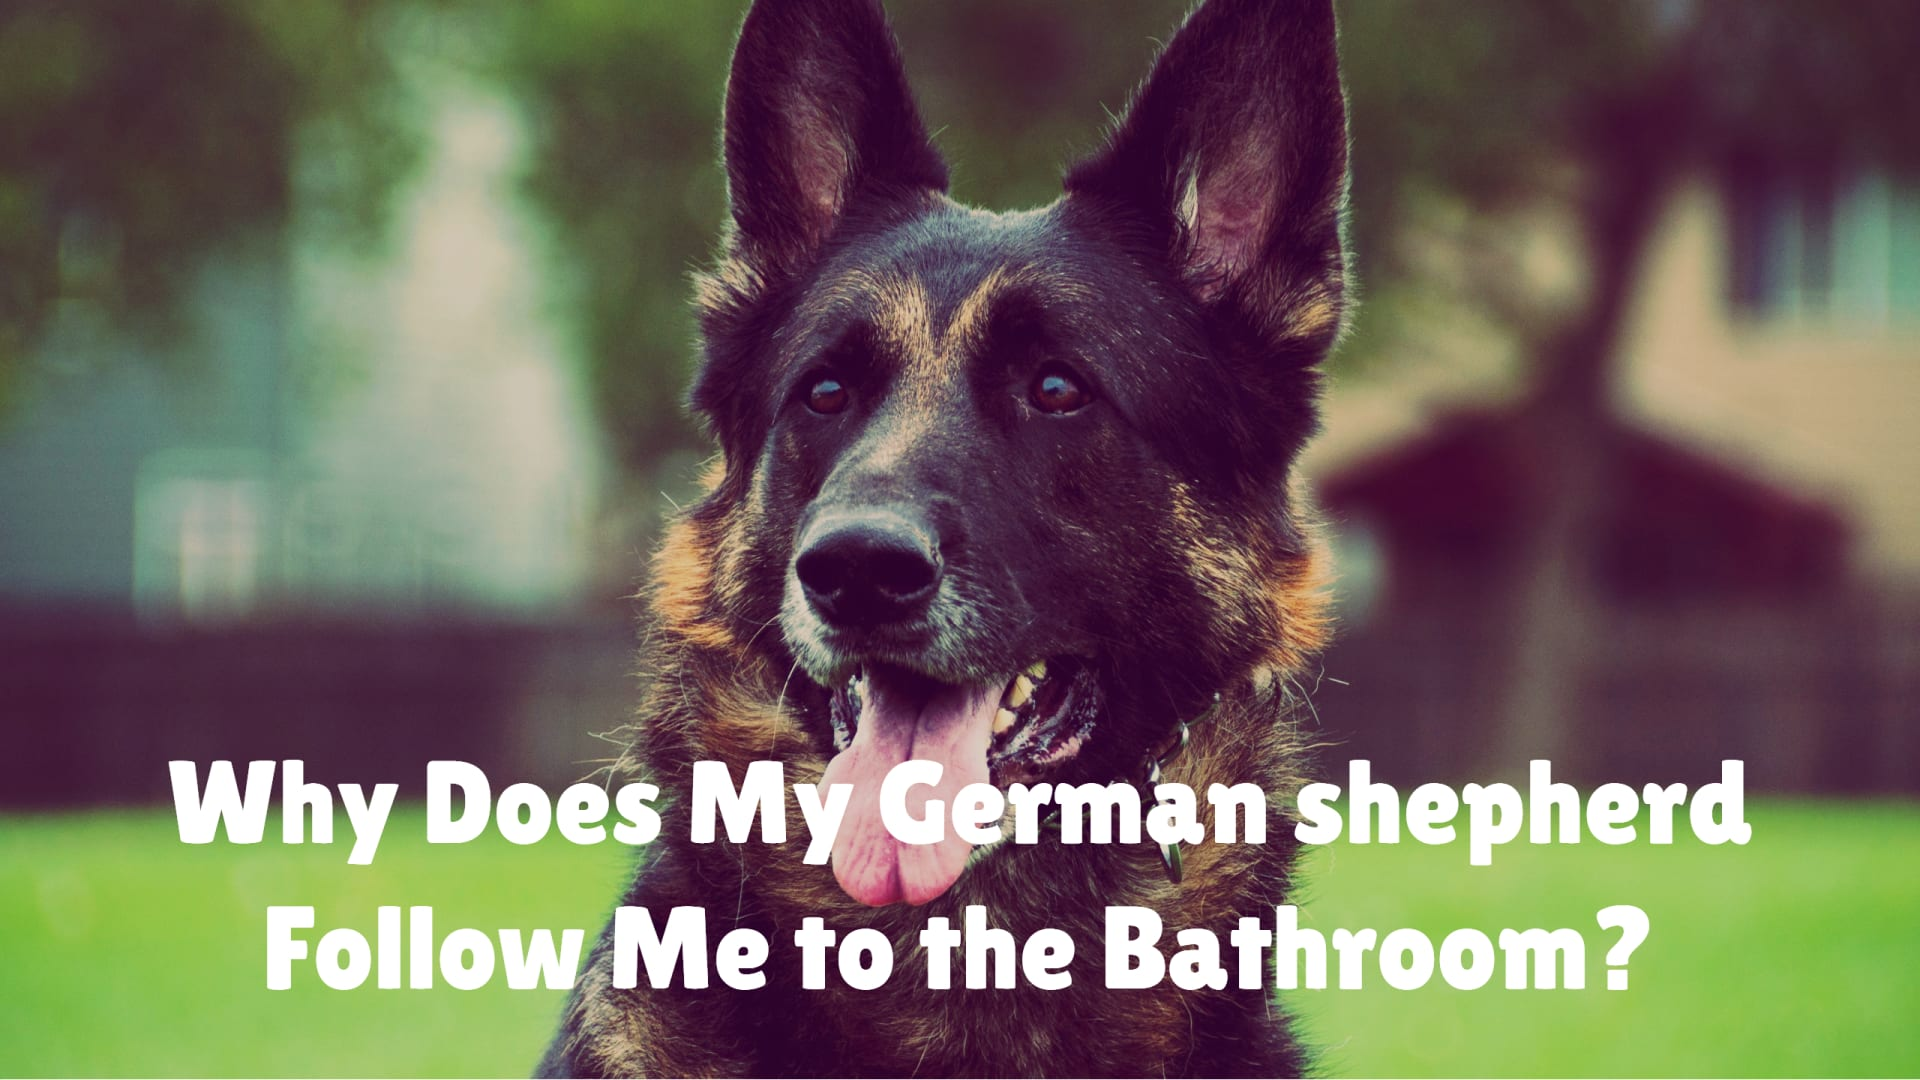 Why Does My German shepherd Follow Me to the Bathroom?